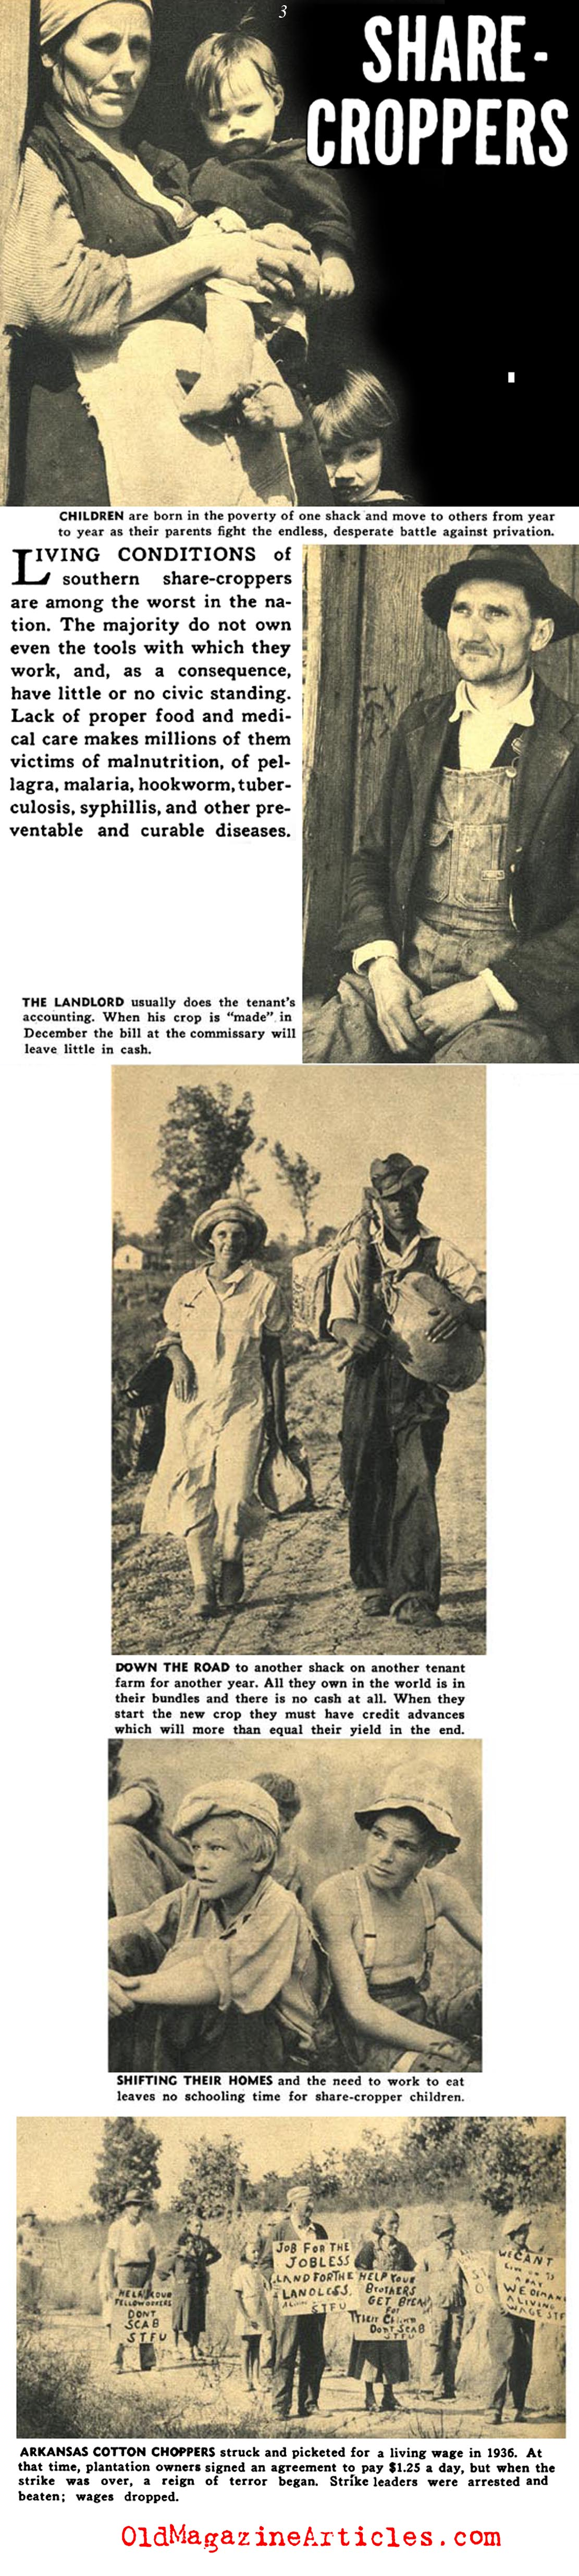 Labor Abuses in the South (Focus Magazine, 1938)